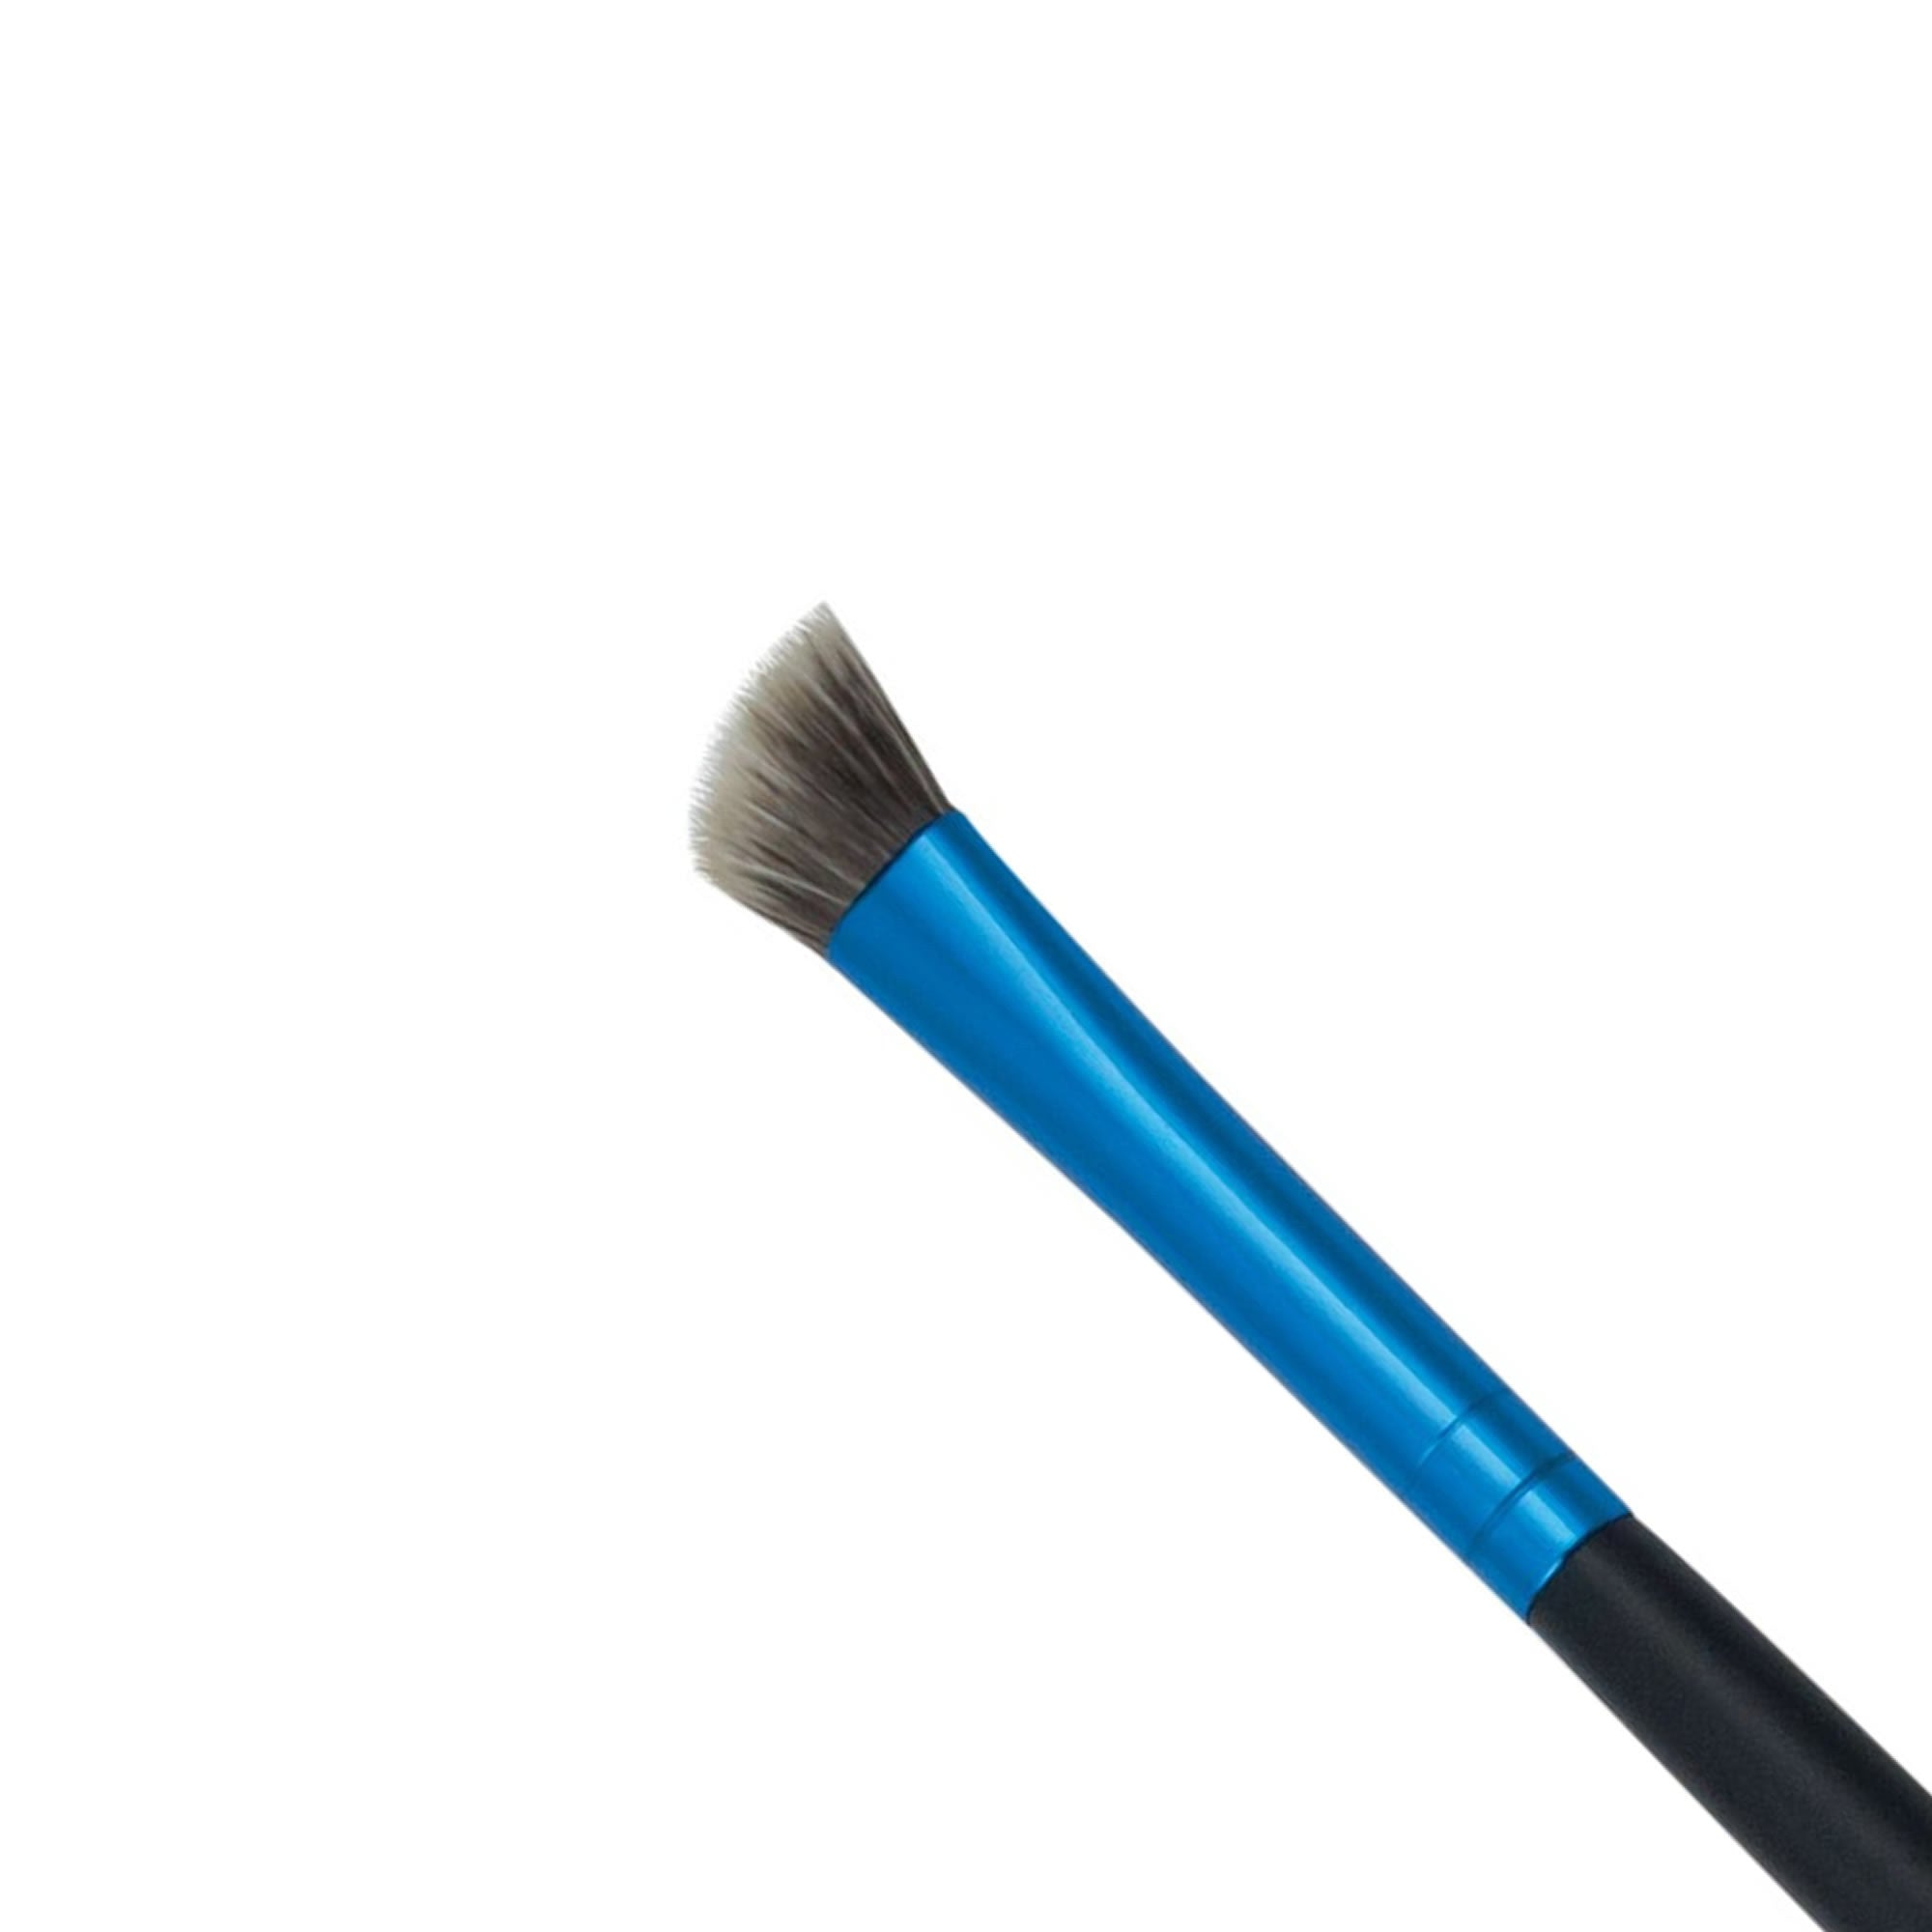 Royal & Langnickel MasterPro Angled Brow Brush - Red Carpet FX - Professional Makeup